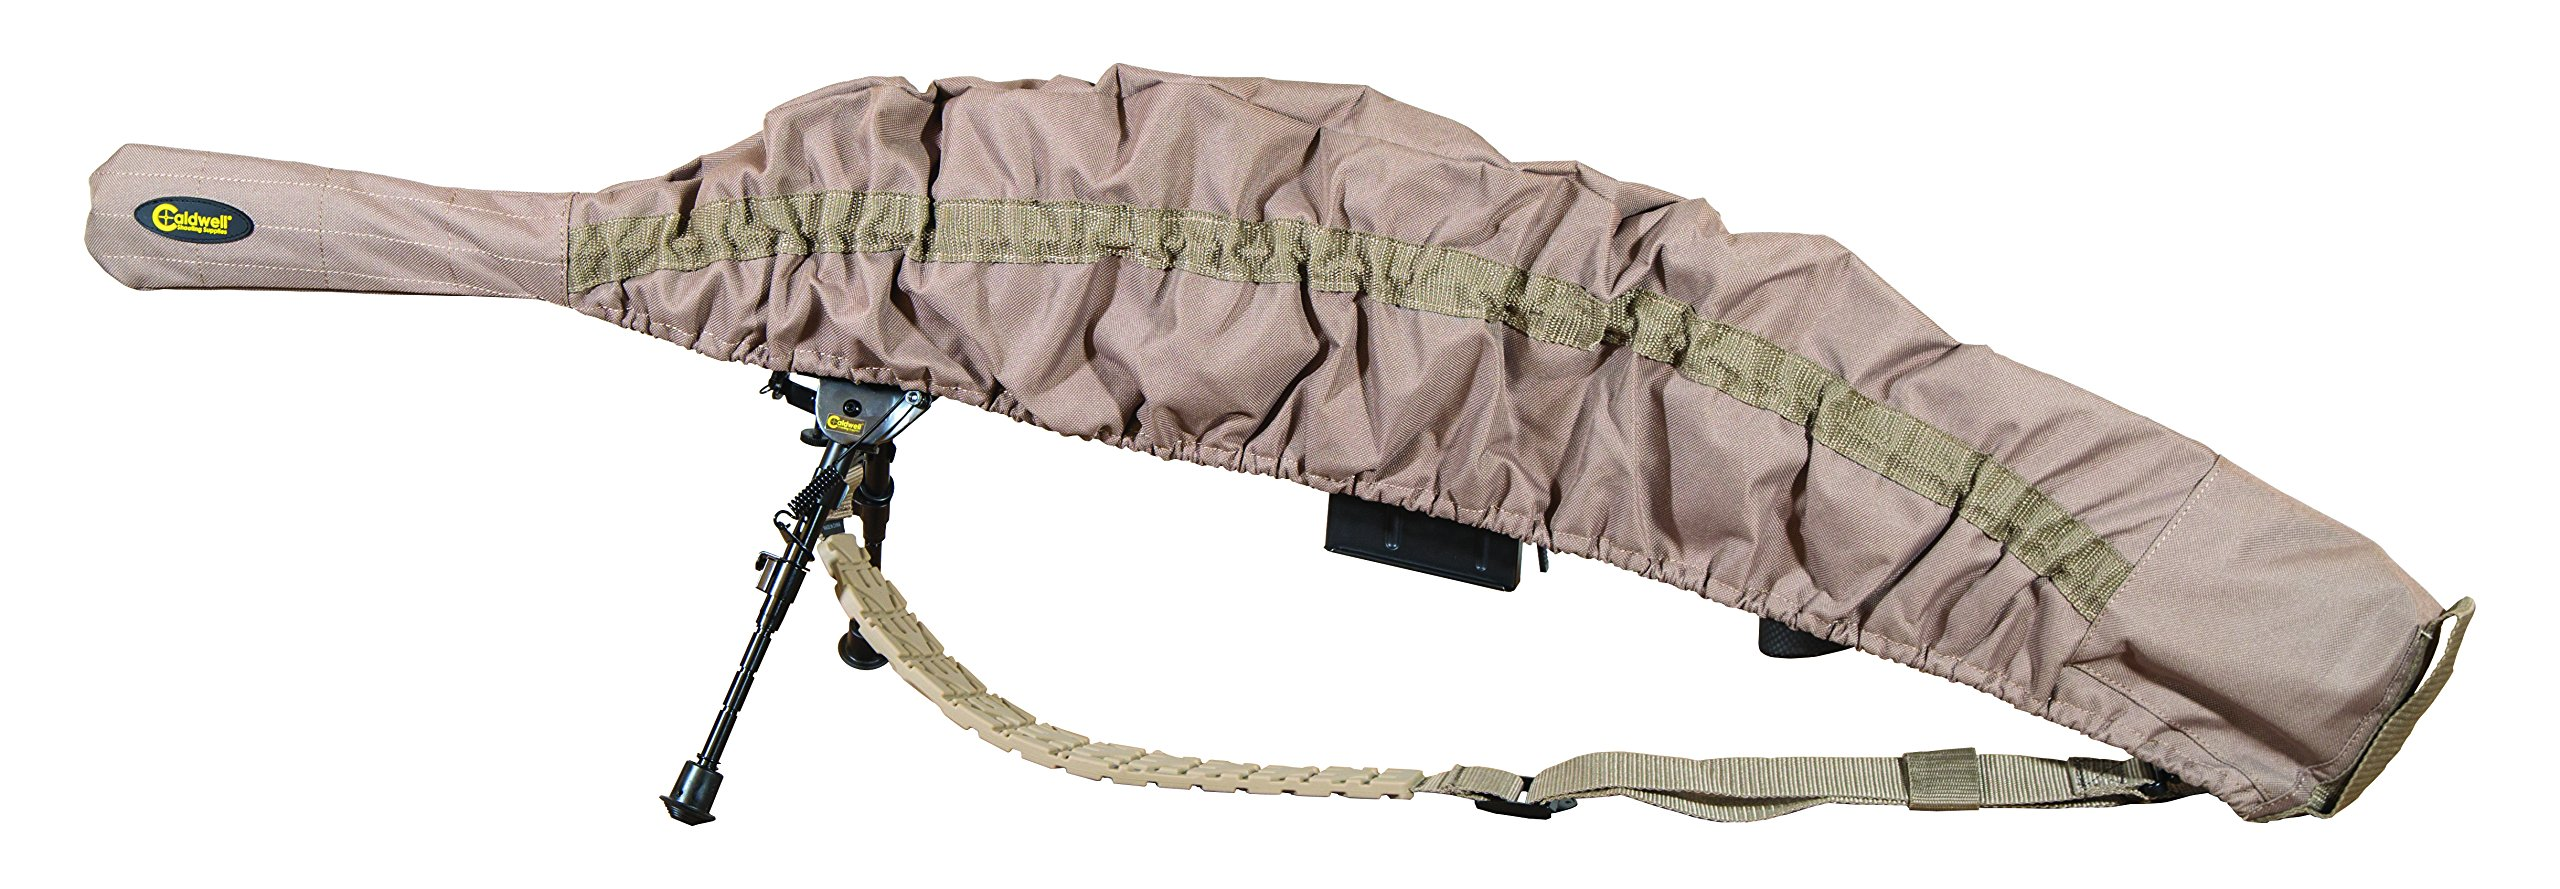 Caldwell Allweather Fast Case Gun Cover with FDE Color, PVC Lined Fabric, Water Resistance and Quick Access Design for Outdoor, Range, Shooting and Hunting